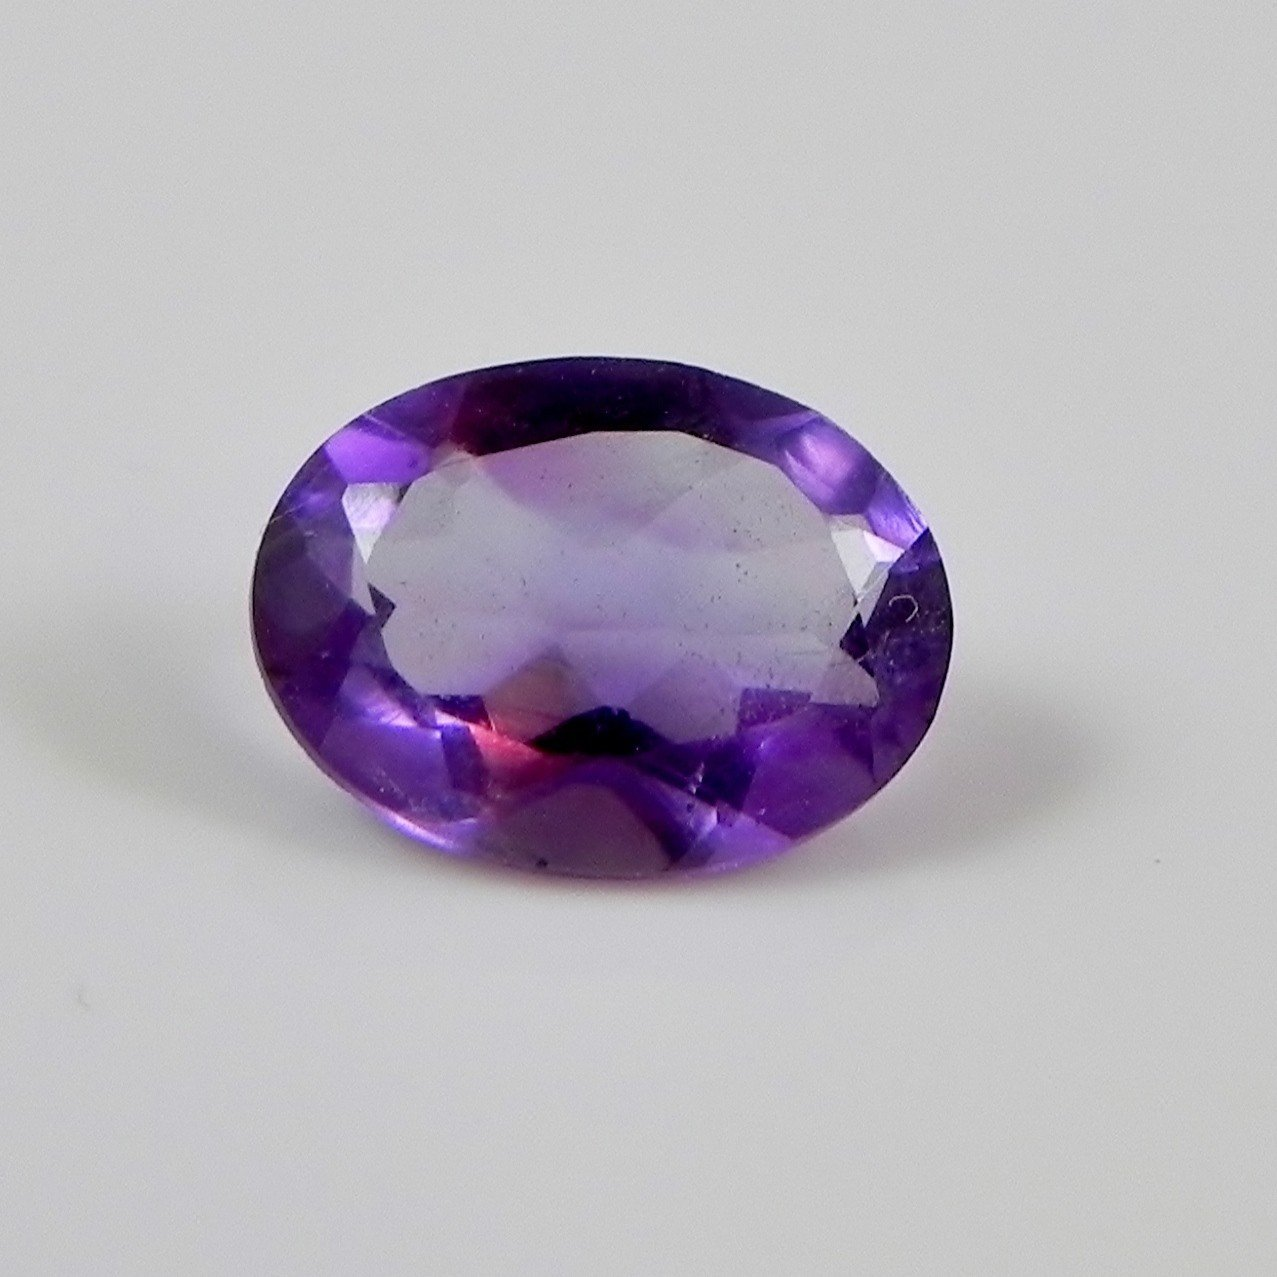 Certified Natural Amethyst AAA Quality 8x6 mm Faceted Oval 5 pcs Lot